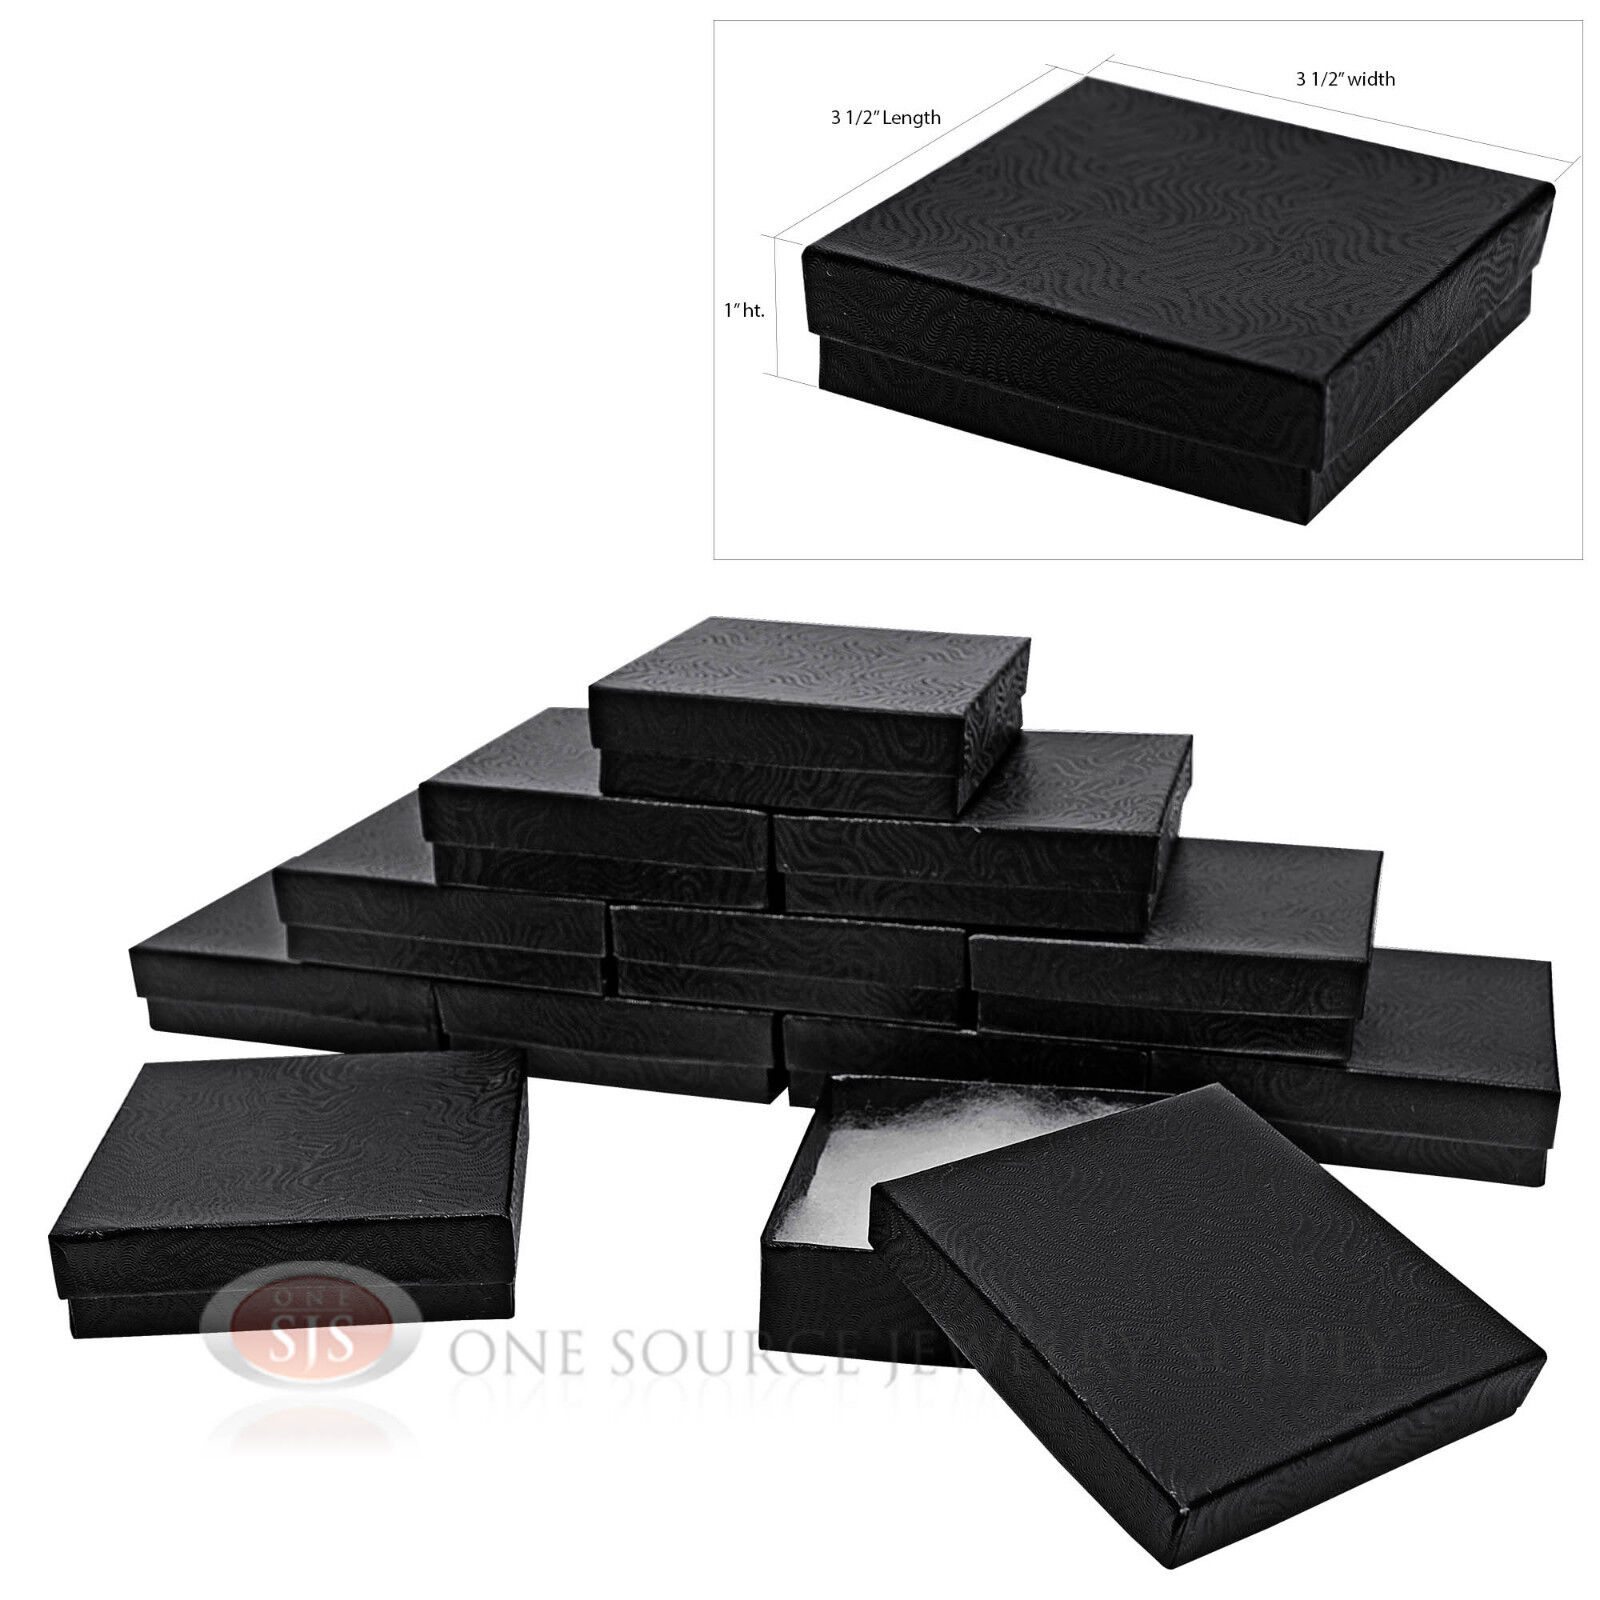 Black Gift Boxes Details About Lot Of 12 Black Cotton Filled Boxes Jewelry Gift Boxes Bracelet Bangle Box 3